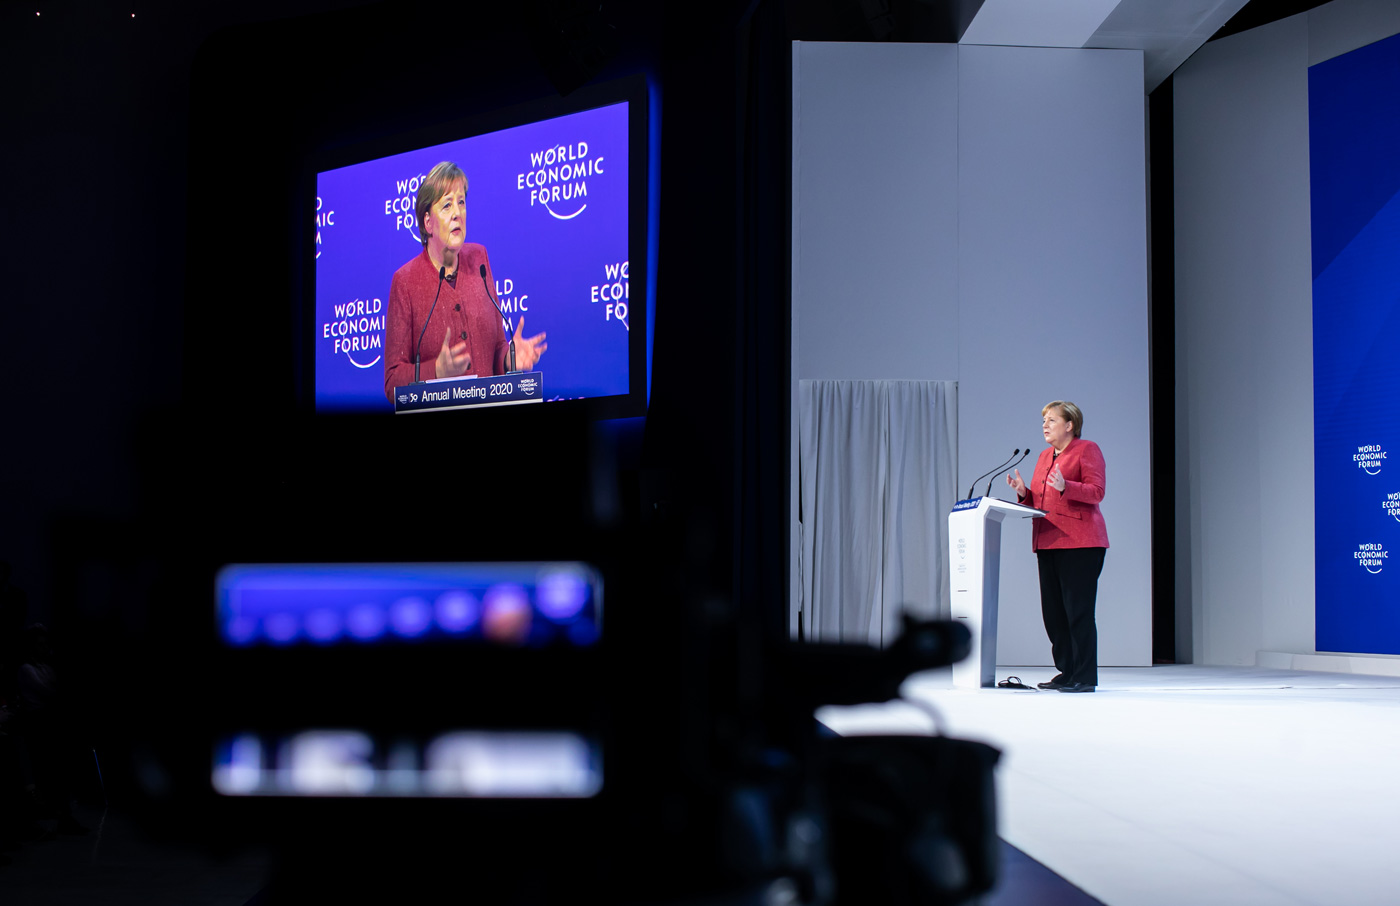 Angela Merkel, Federal Chancellor of Germany, speaking during her Special Address at WEF 2020. Credit: World Economic Forum/Ciaran McCrickard.